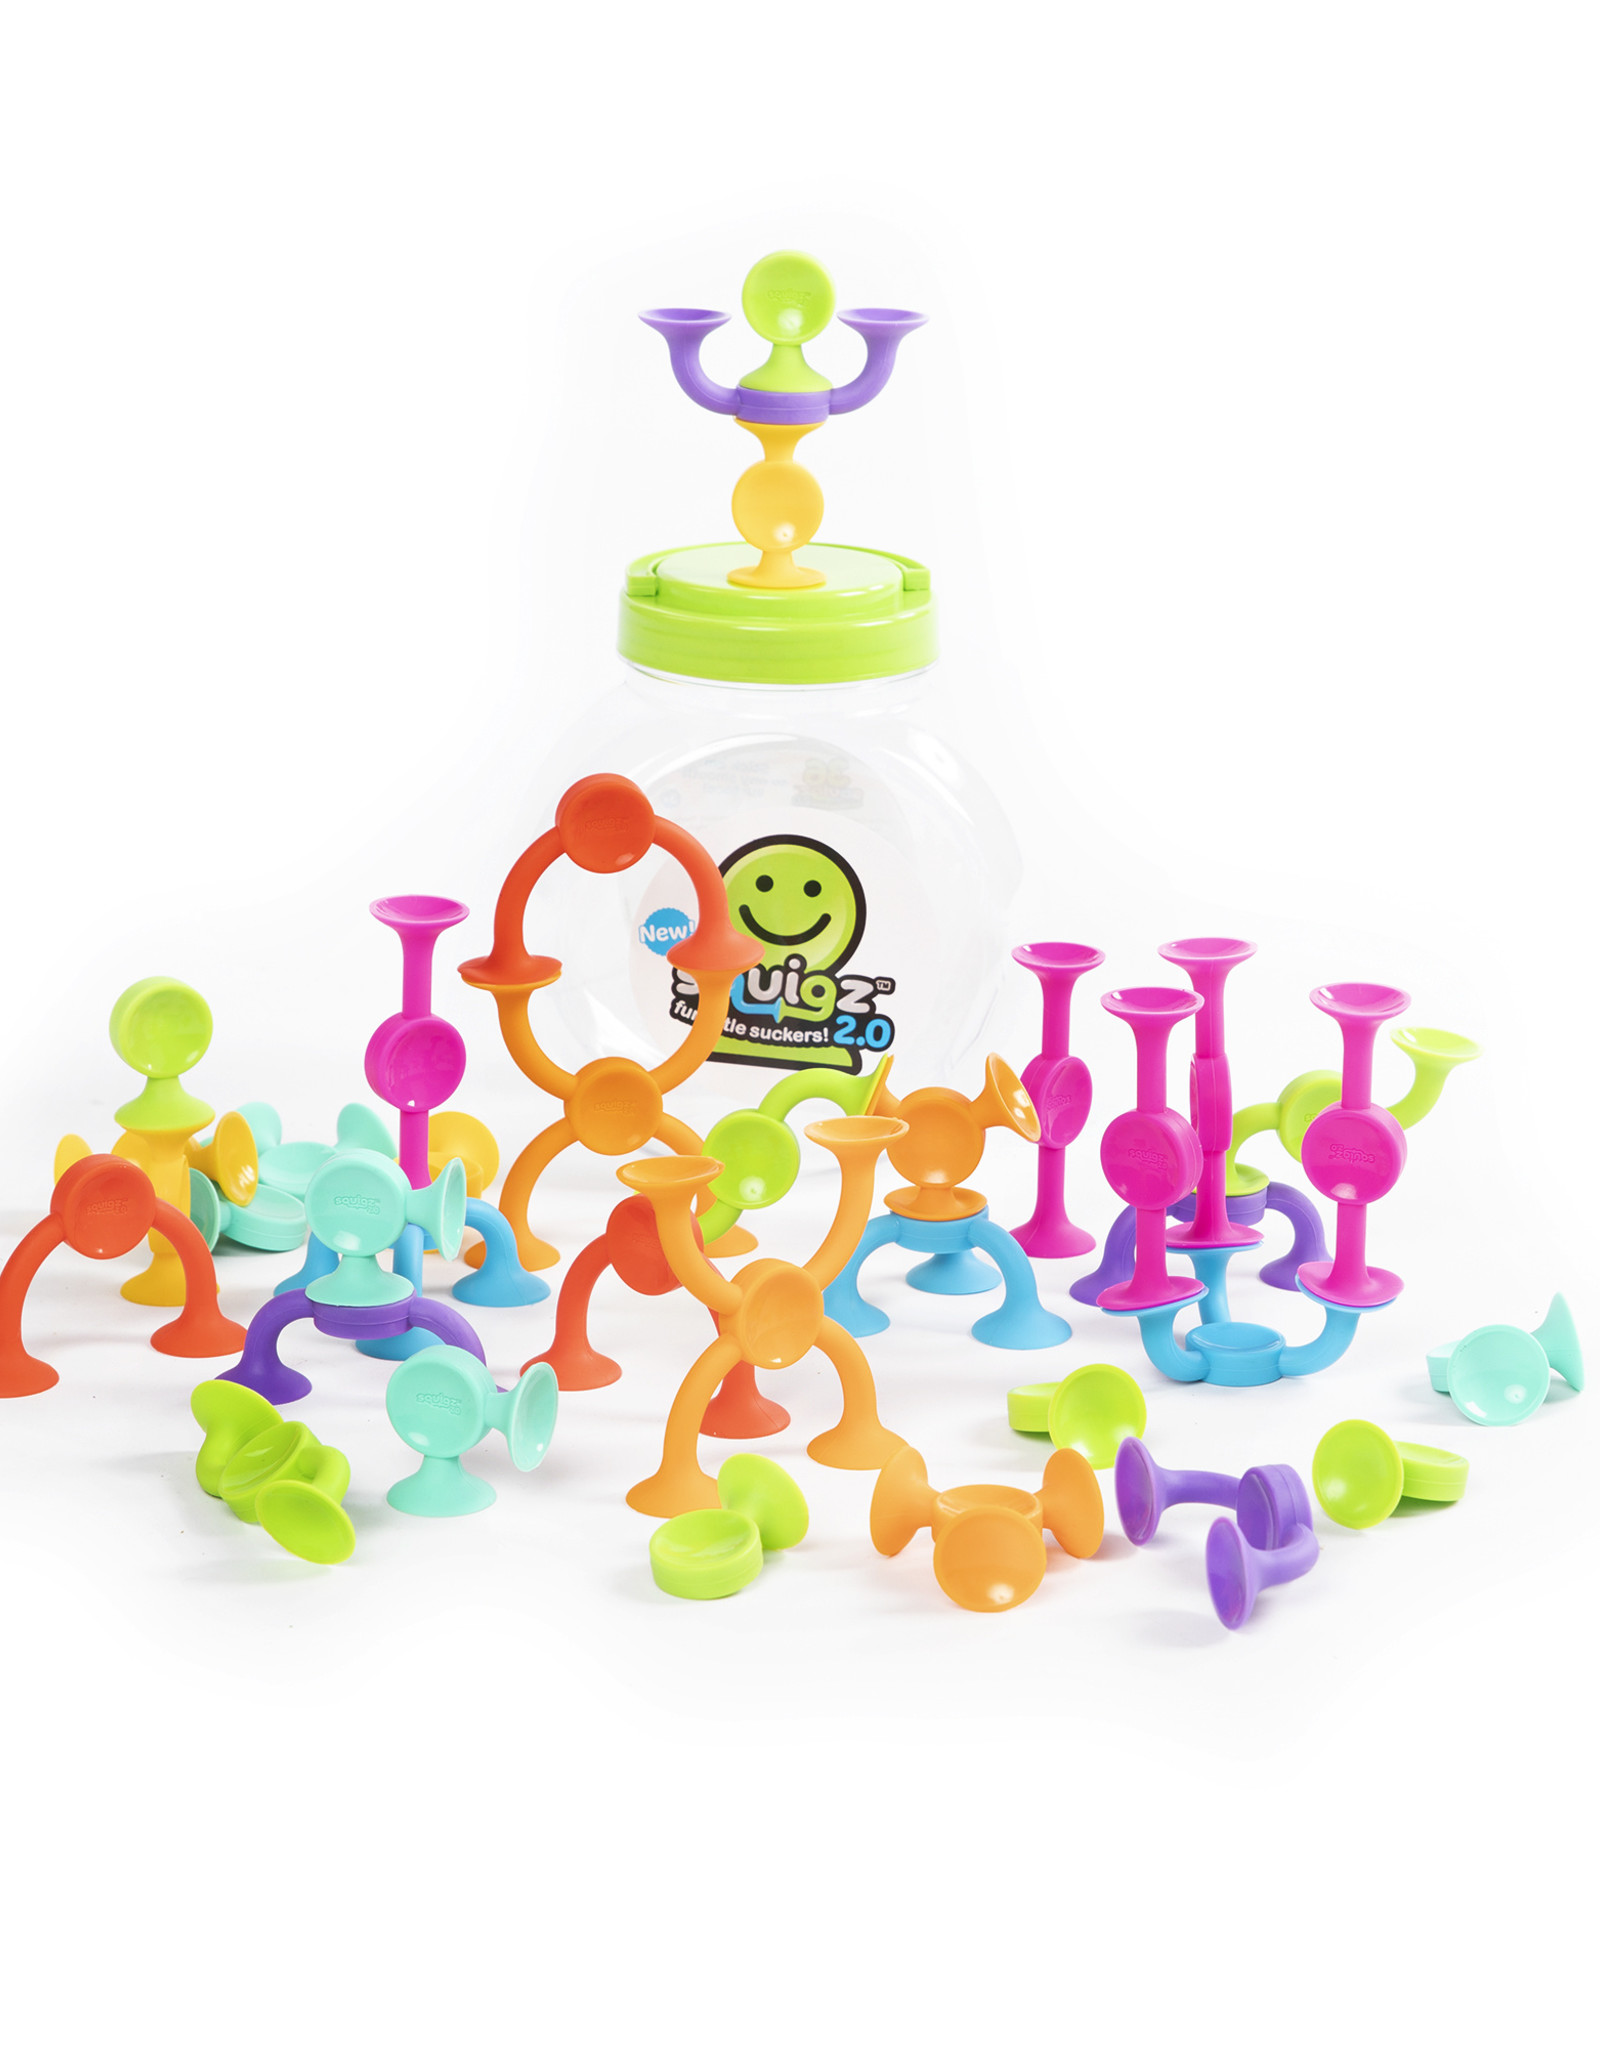 Fat Brain Toy Co. 2.0 Squigz